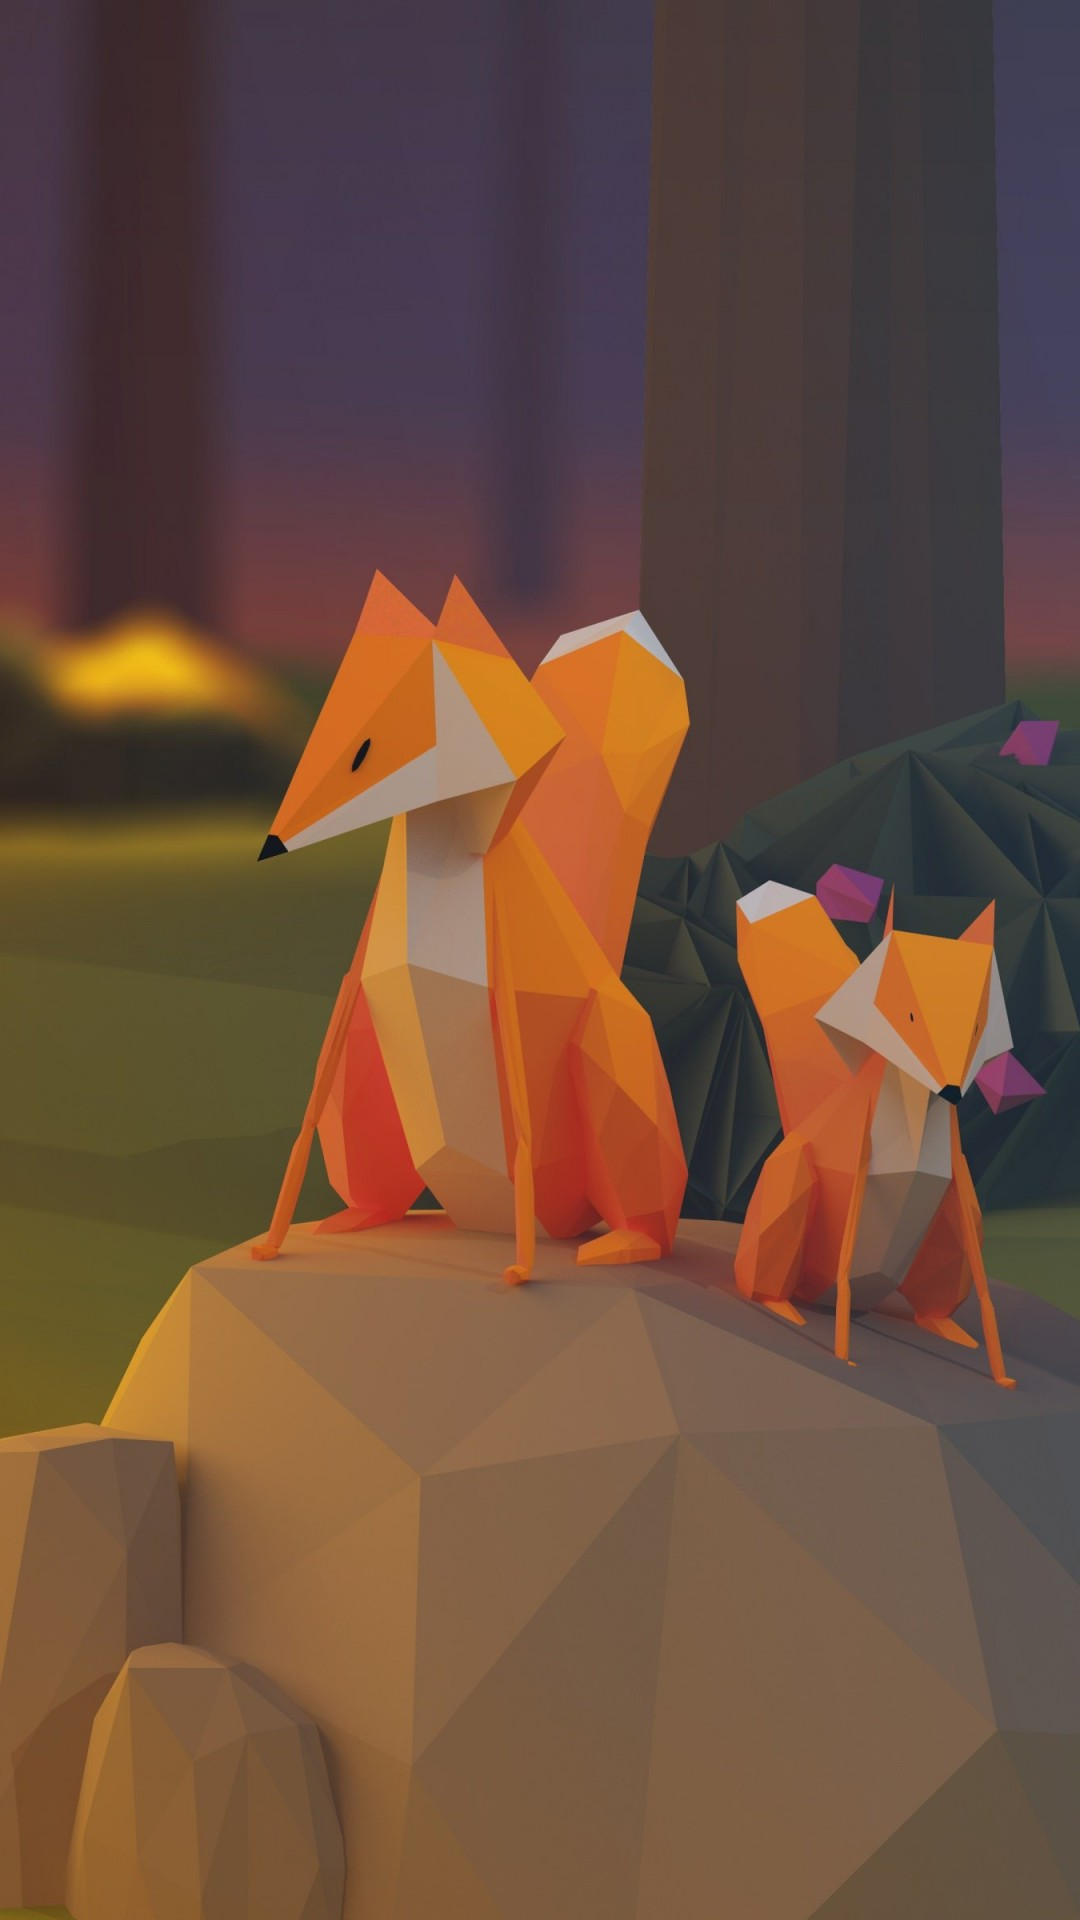 Low Poly Foxes Wallpaper for SAMSUNG Galaxy S5